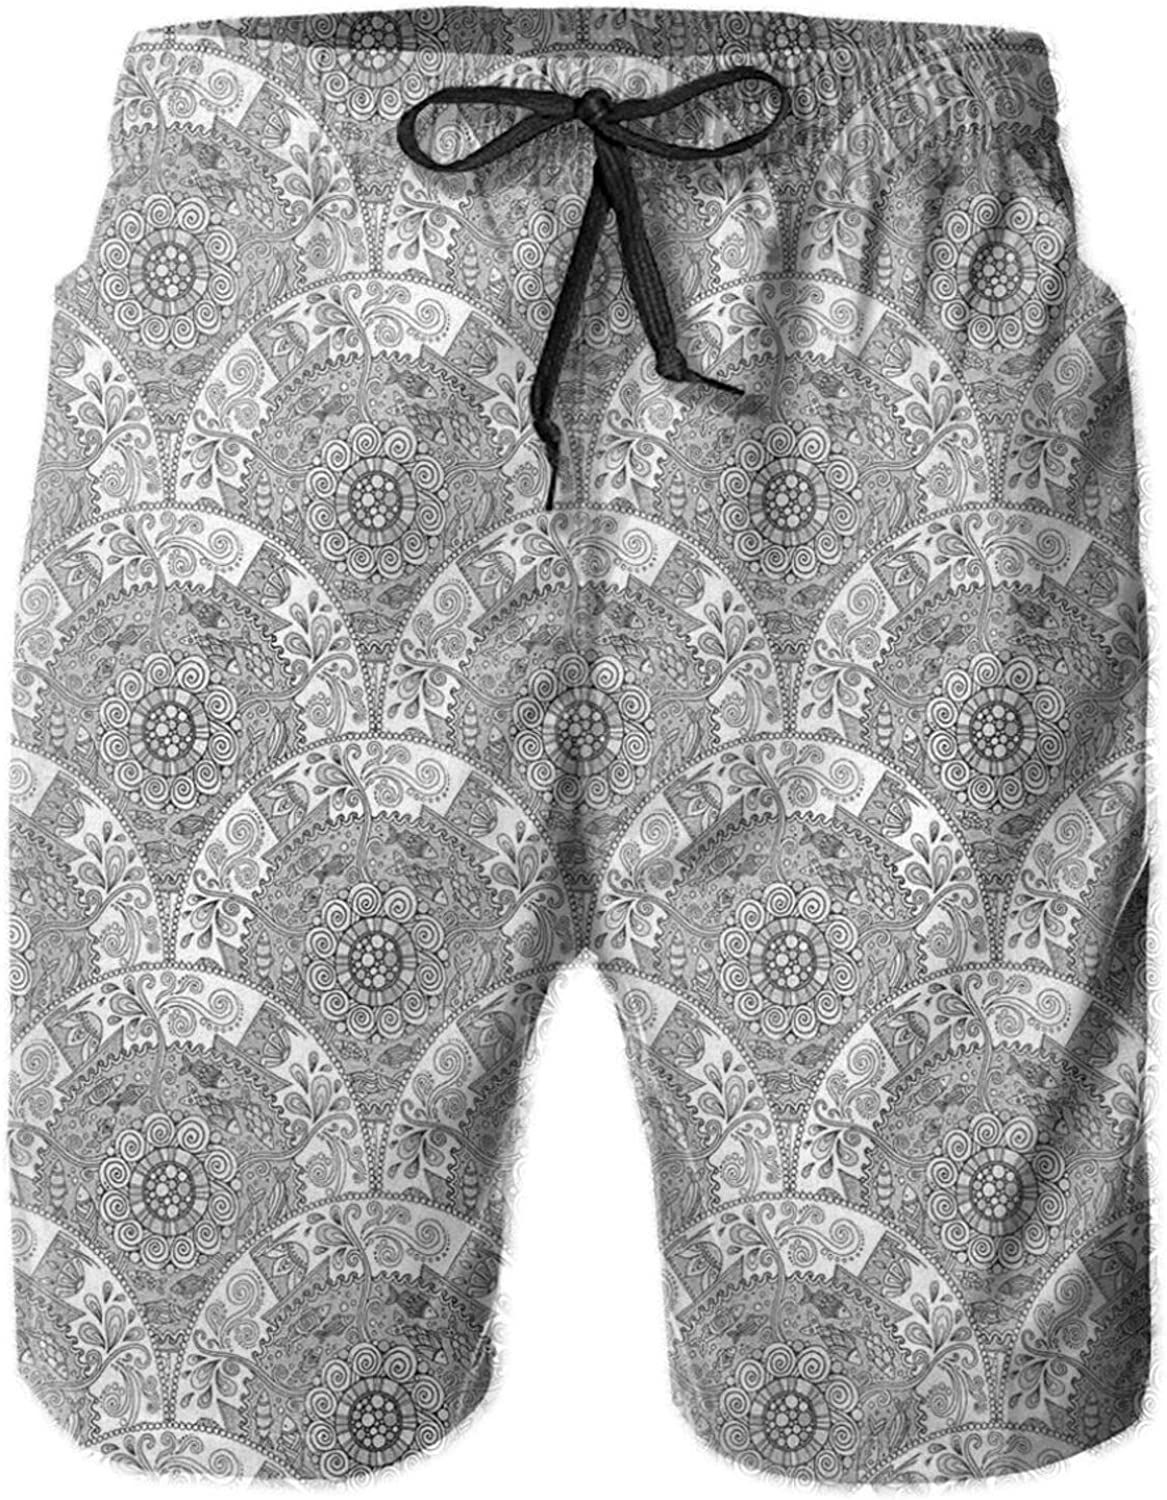 Greyscale Ethnic Sketch Mandala Design with Boat and School of Fish in The Wind Mens Swim Trucks Shorts with Mesh Lining,M